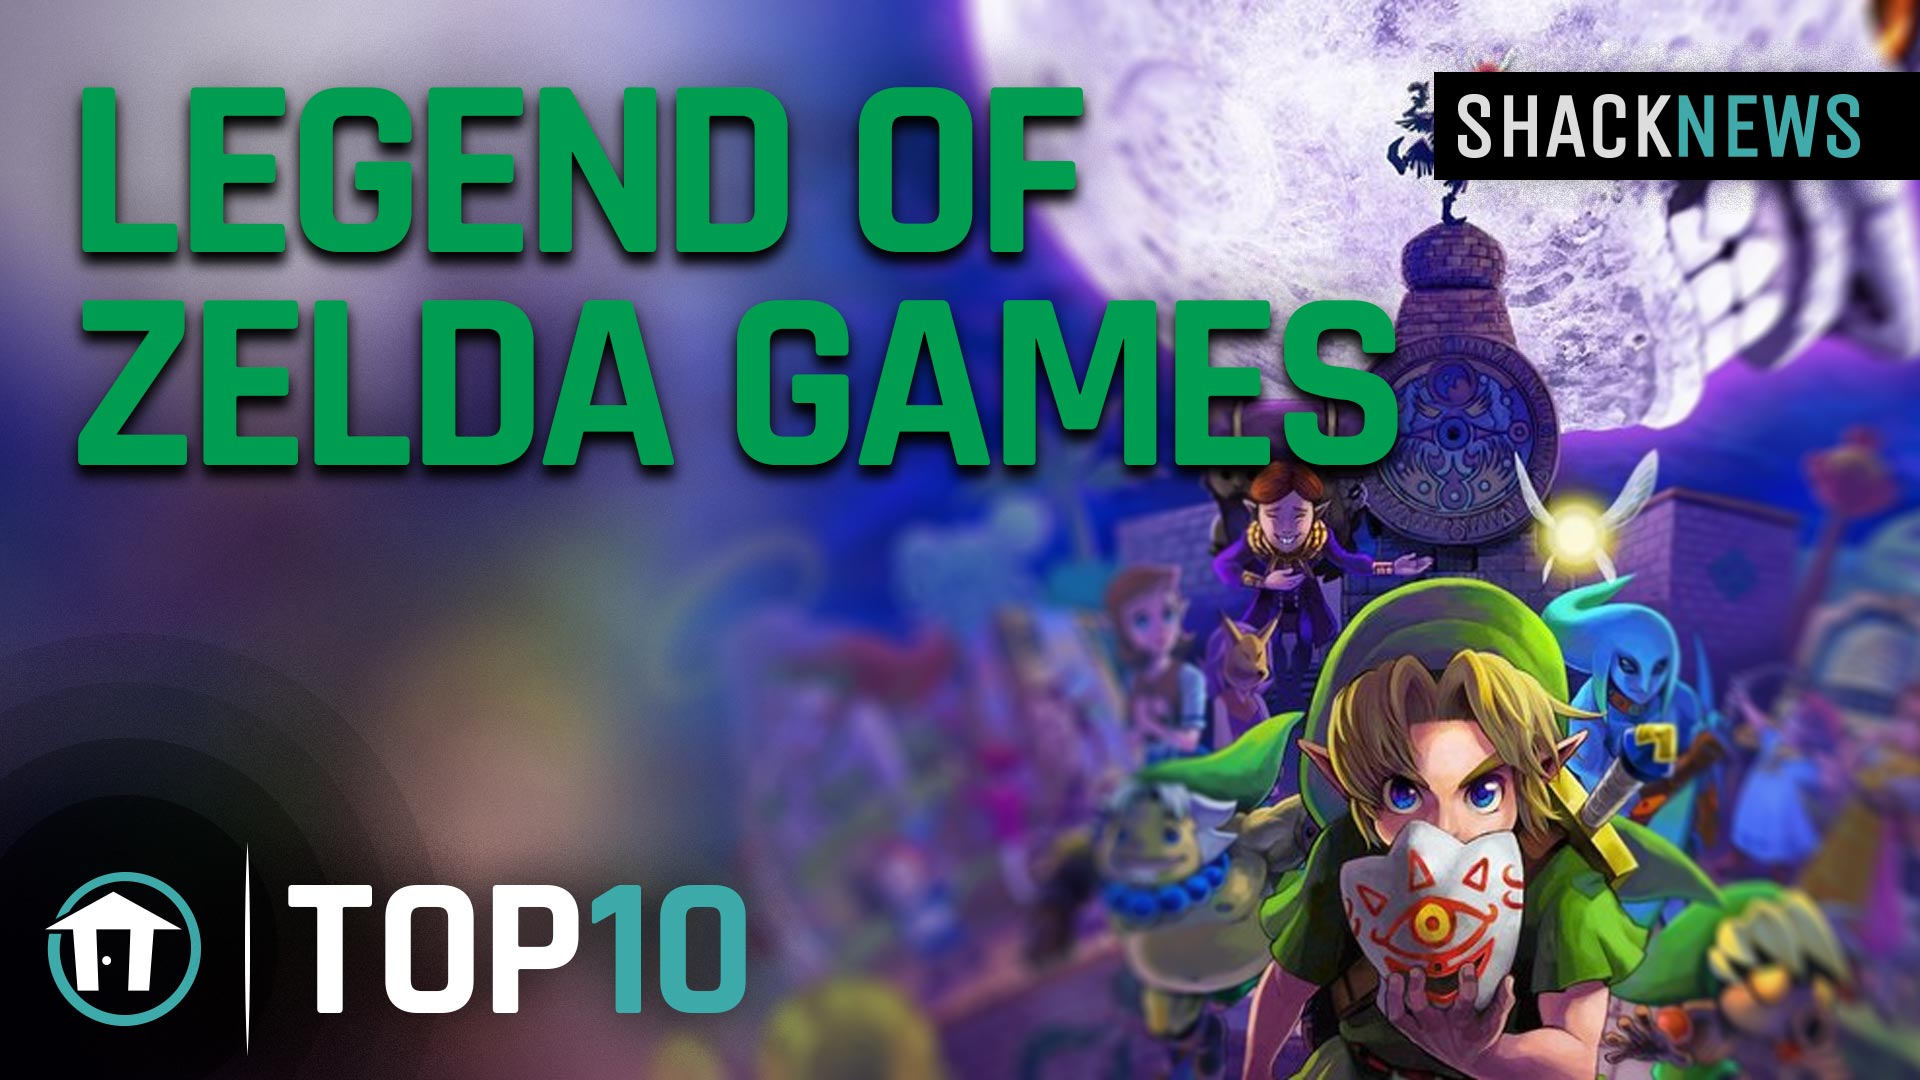 Top 10 The Legend of Zelda games of all-time | Shacknews